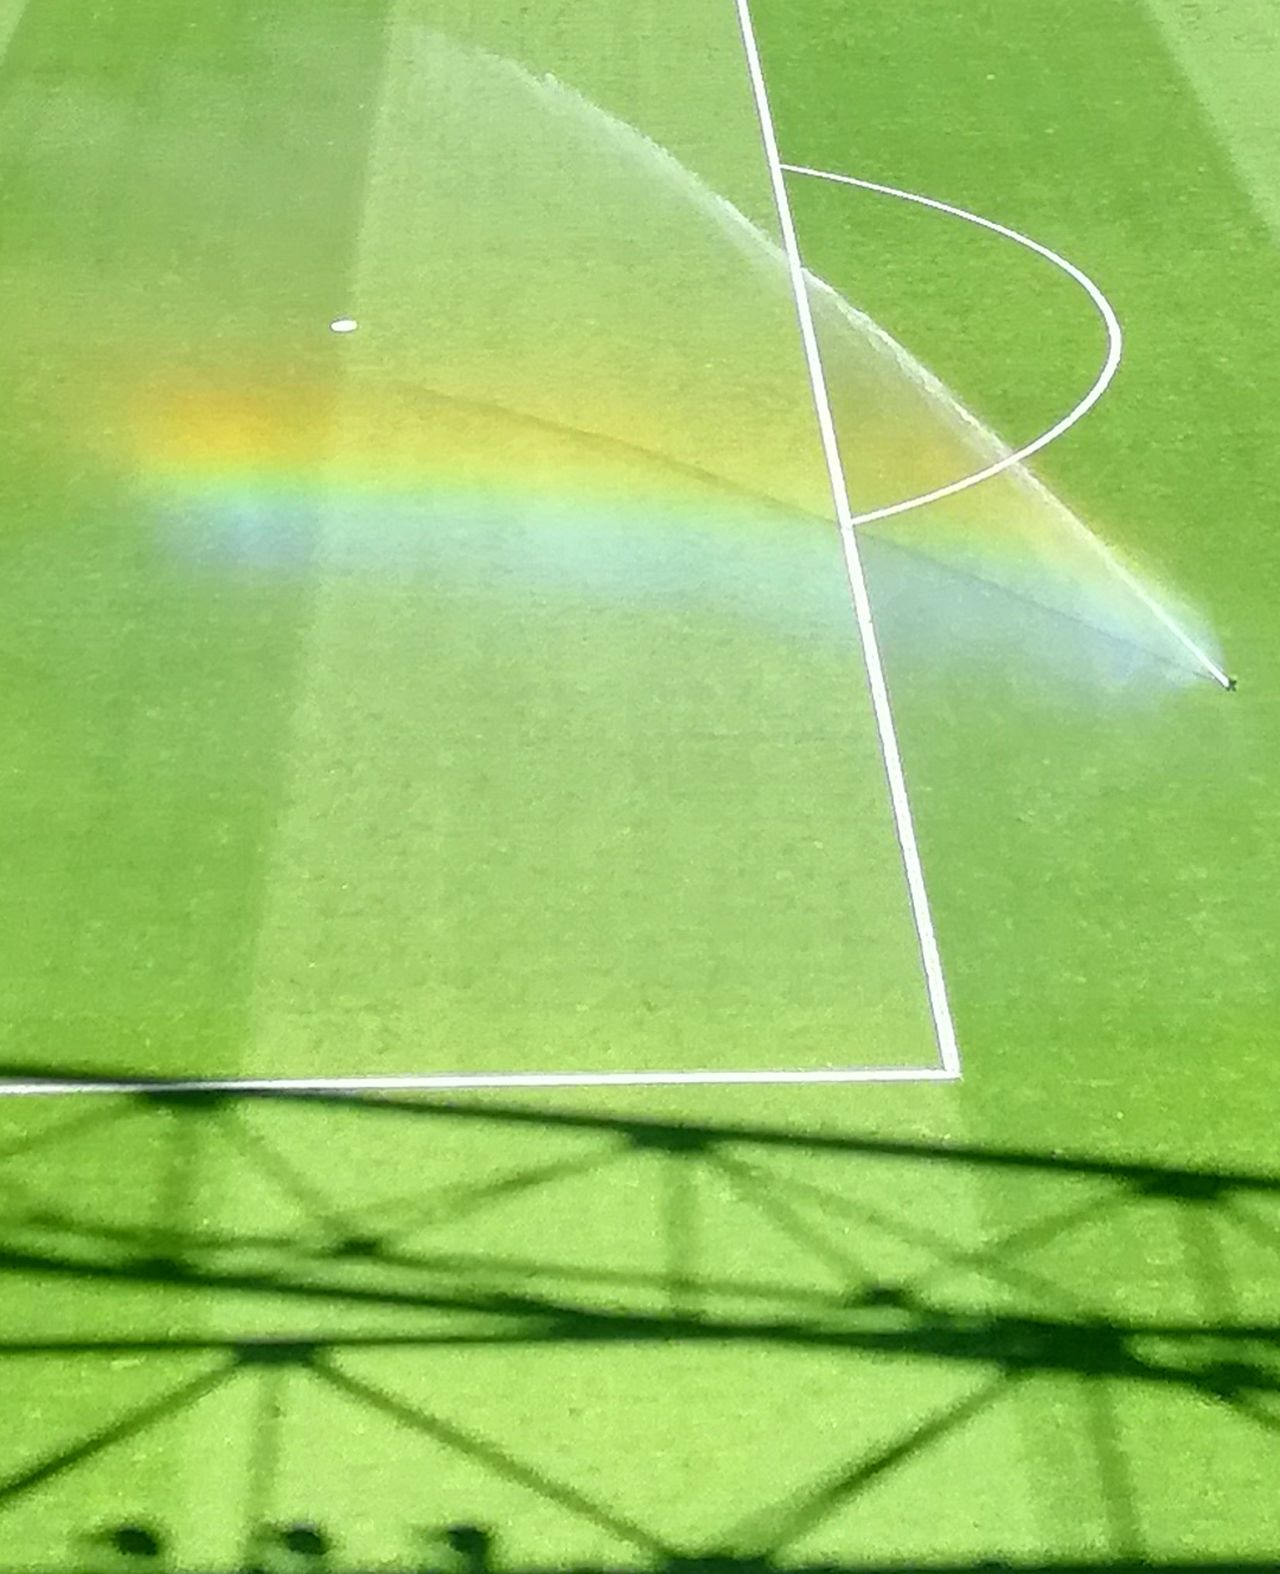 Green Color Soccer Field Sport Soccer Playing Field No People Backgrounds Grass Nature Day Close-up Outdoors Rainbow Arcobaleno  Water Reflections Colors